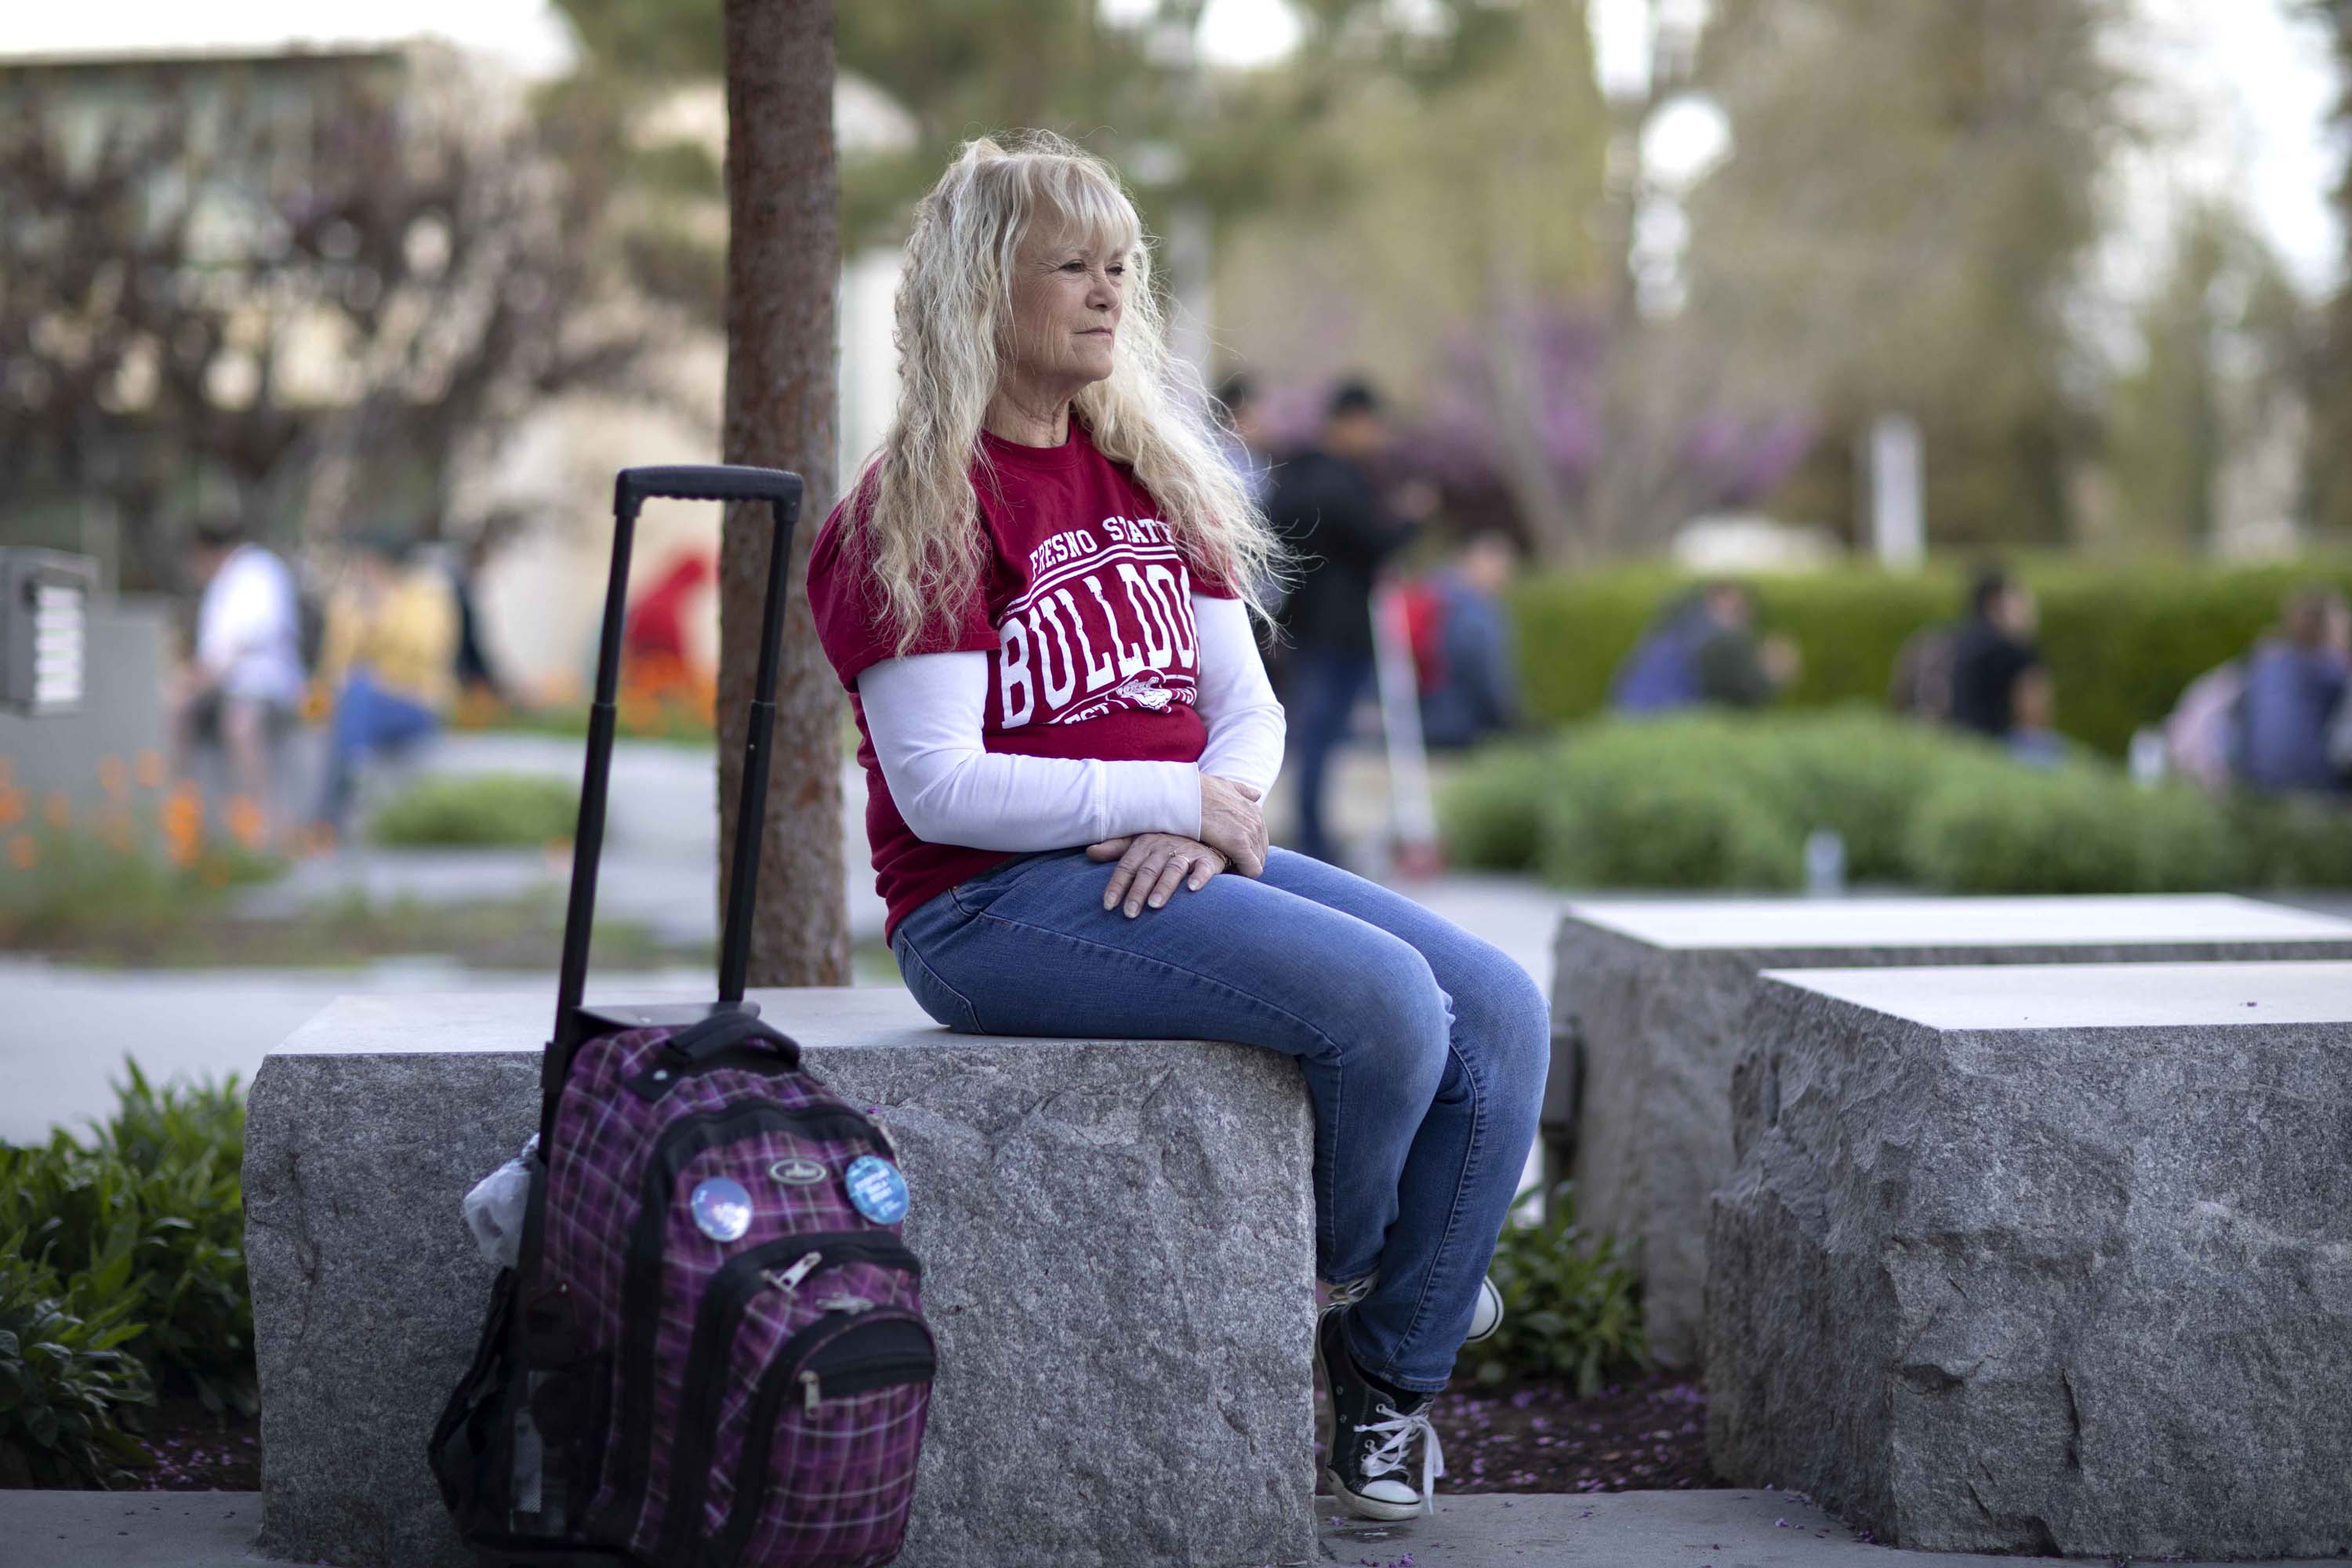 California Seniors Head Back To College To Get A Better Job Or Just To Get A Degree